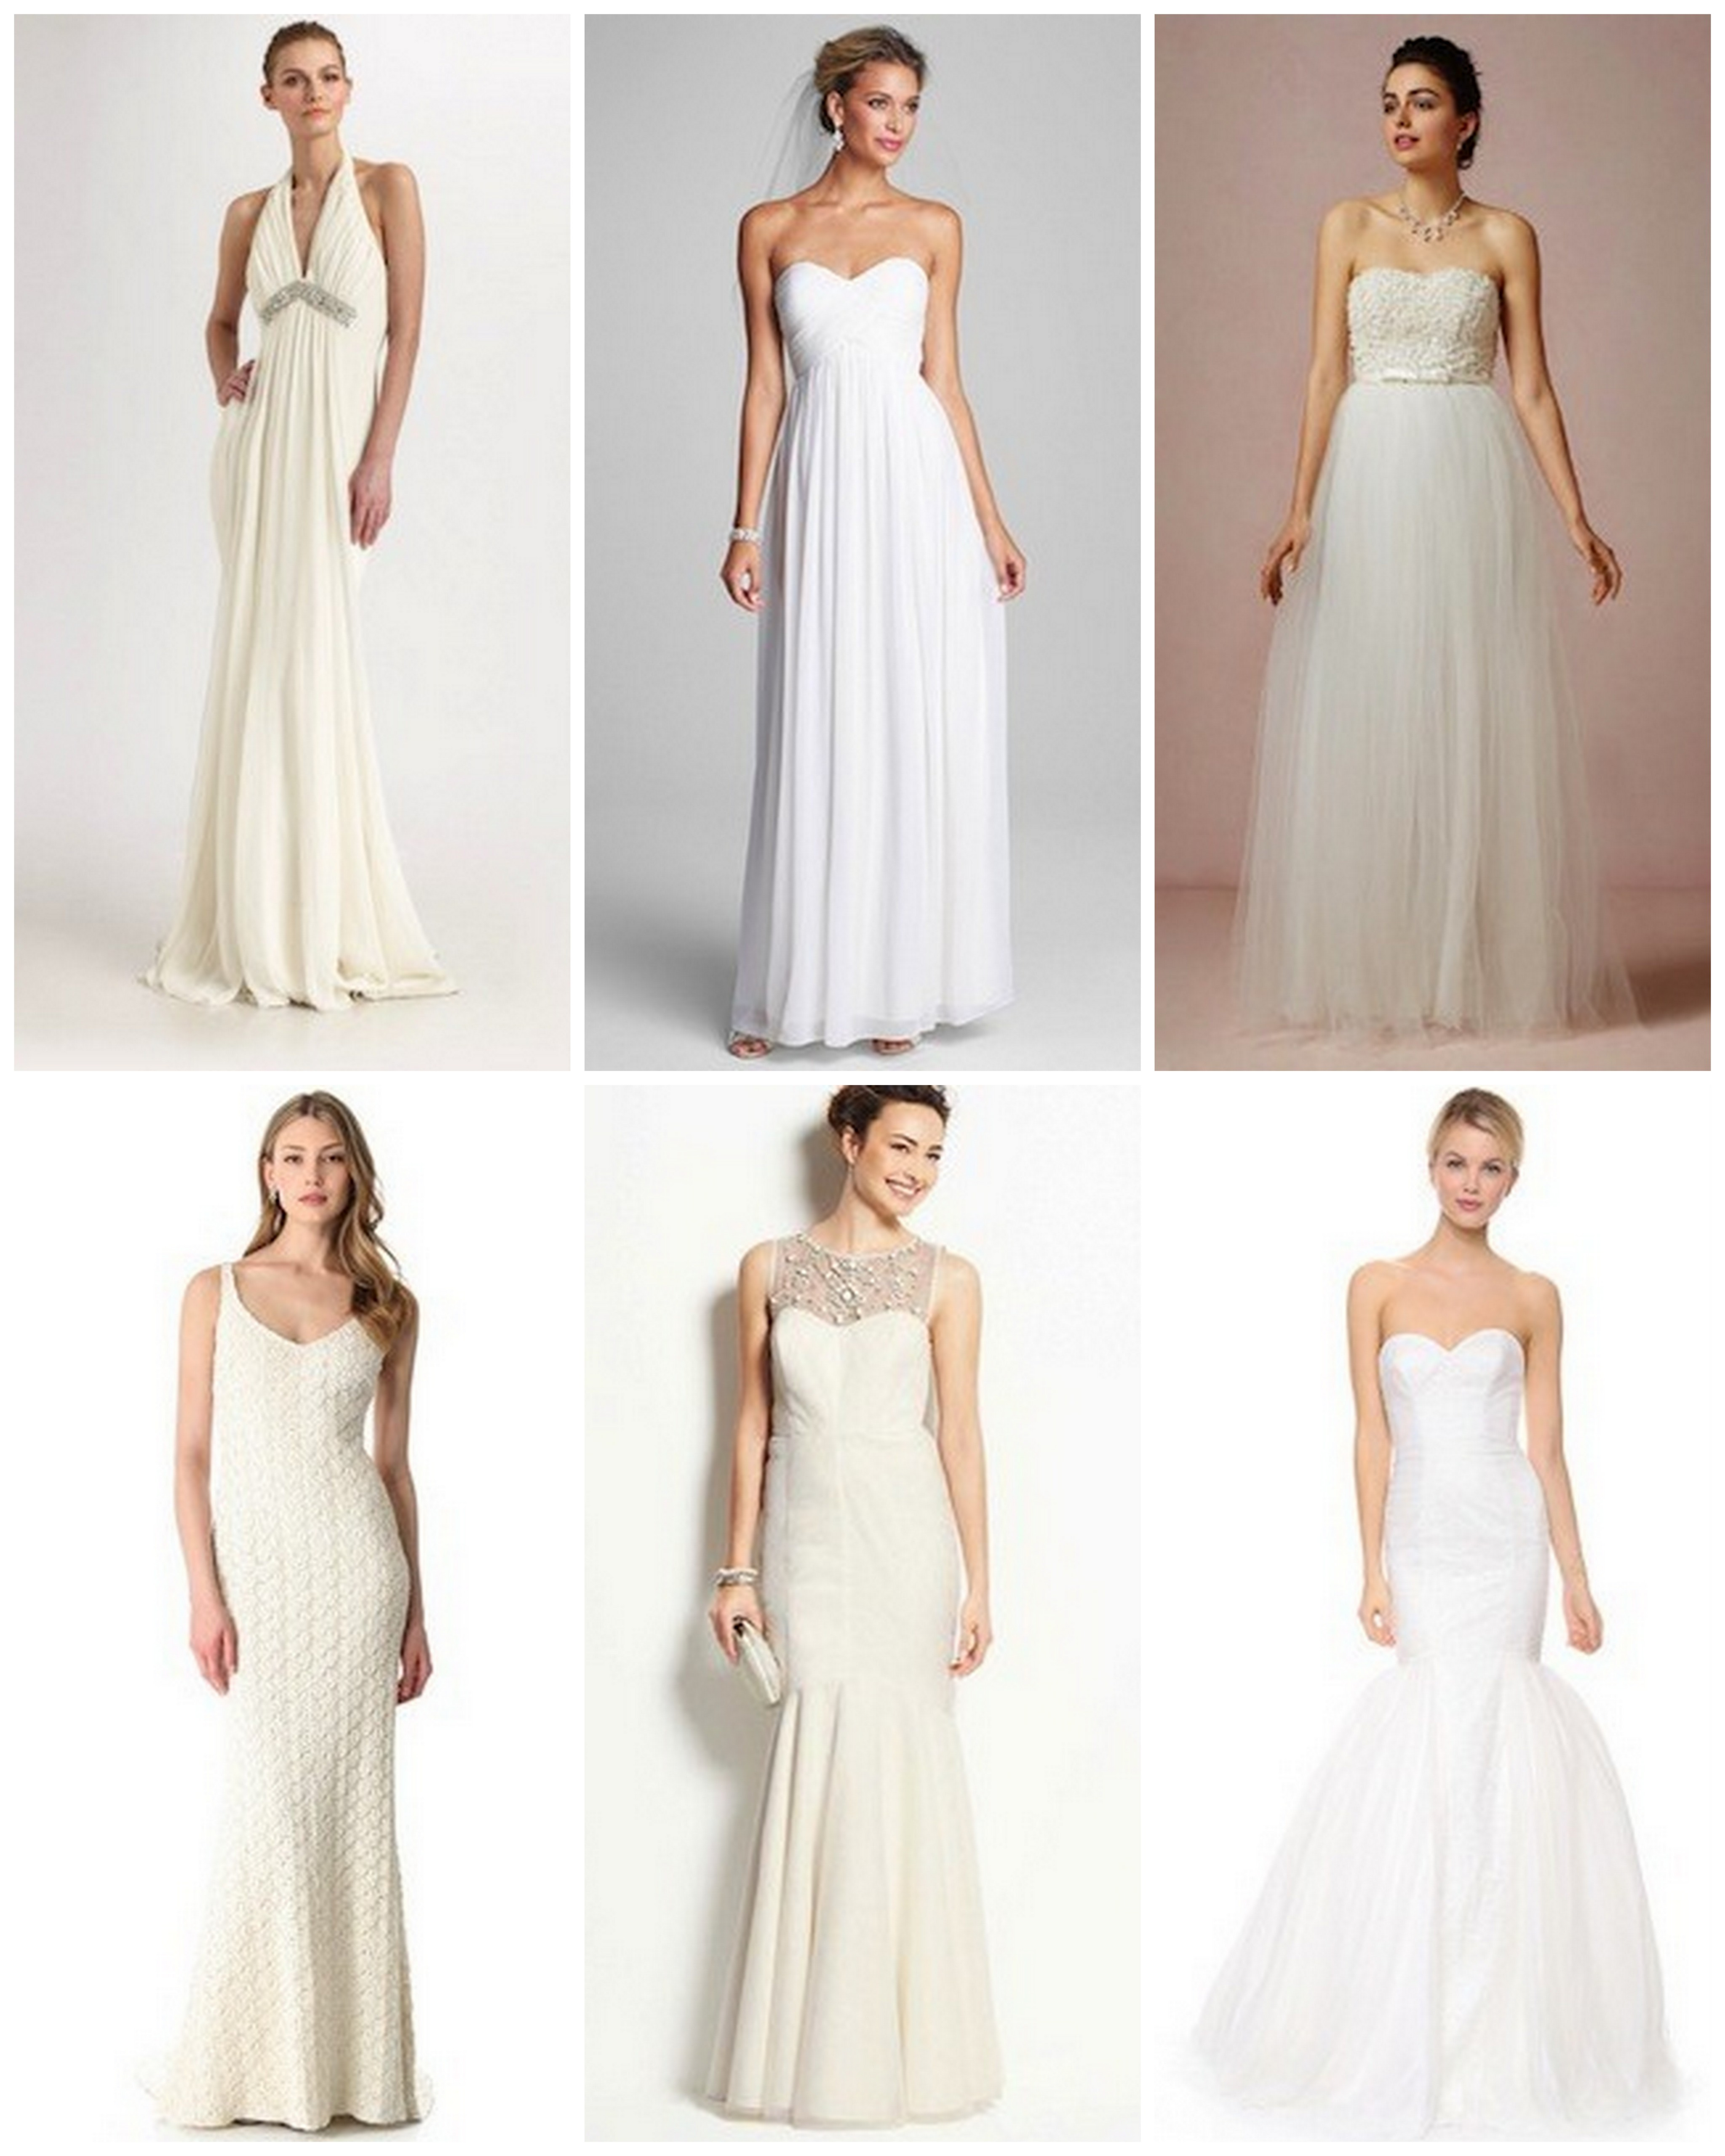 Wedding Gown For Body Type: The Best Wedding Dresses For Any Body Type